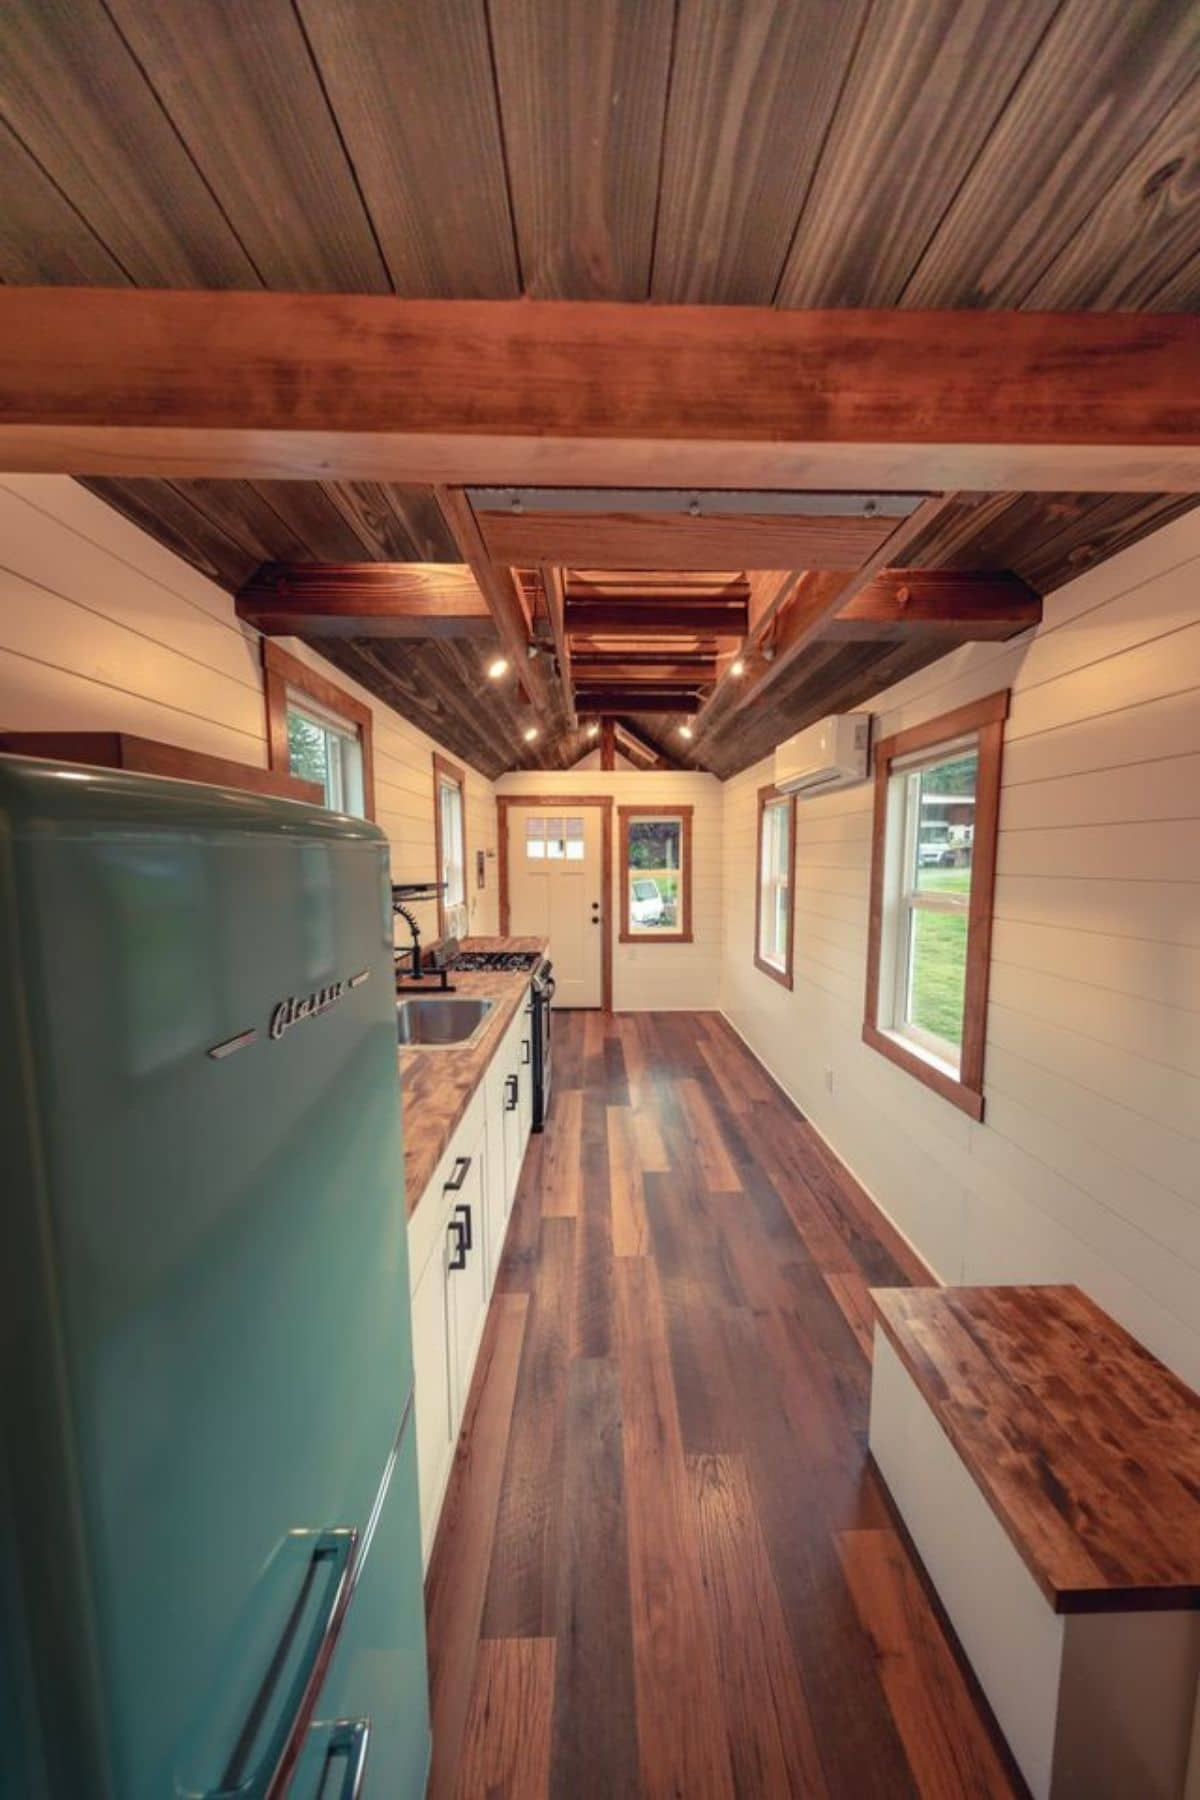 View from ptiny house bathroom toward front door of home with dark wood floor and ceiling